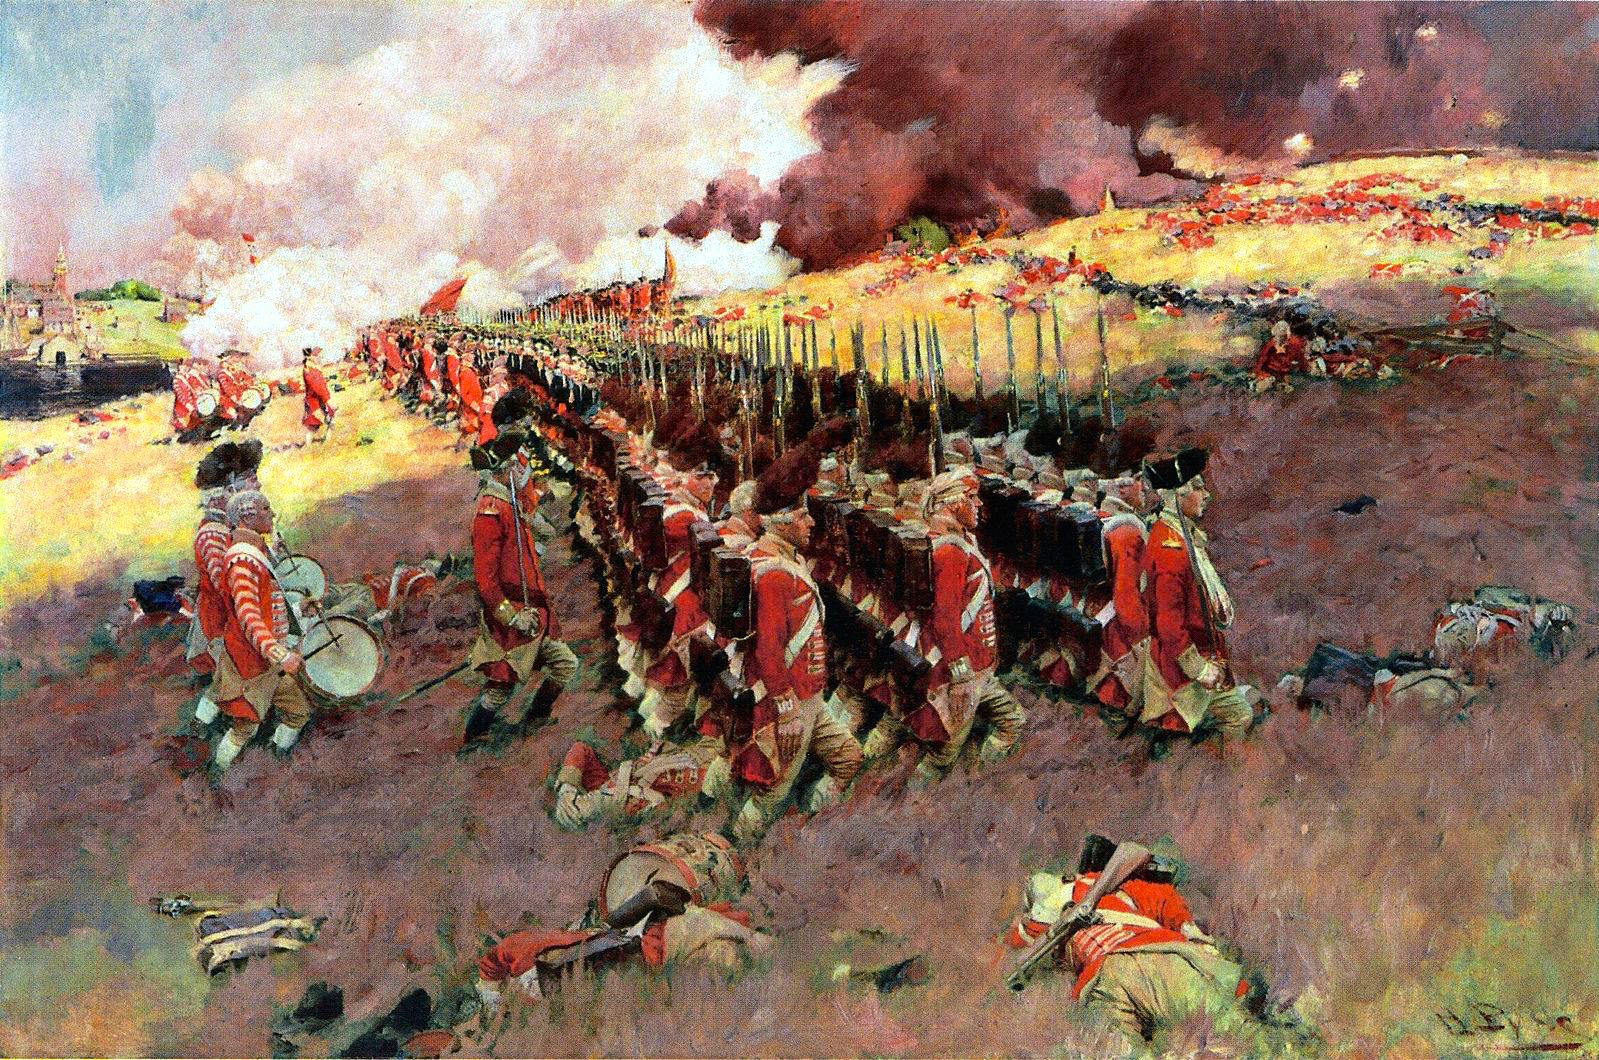 Battle of Bunker Hill by Howard Pyle, 1897